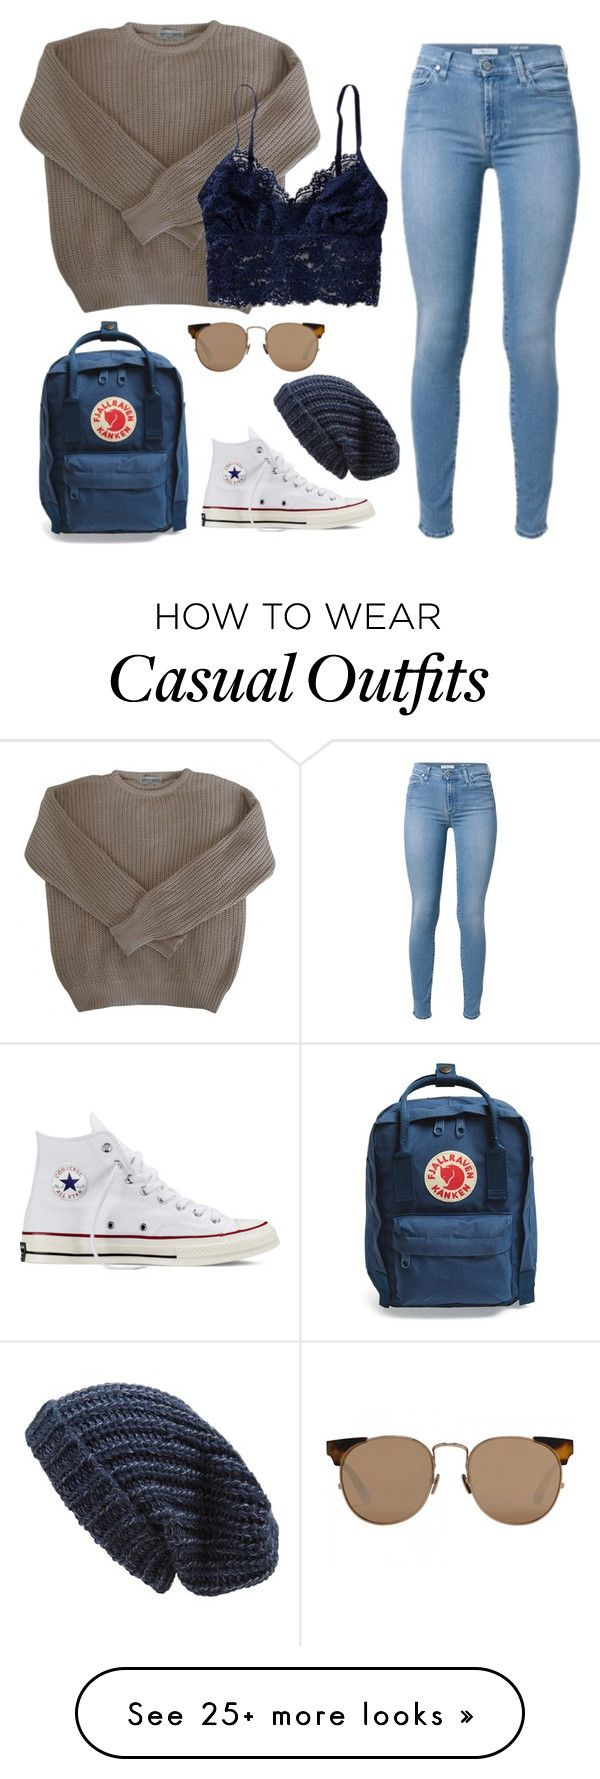 Hipster Fashion: Casual Sets